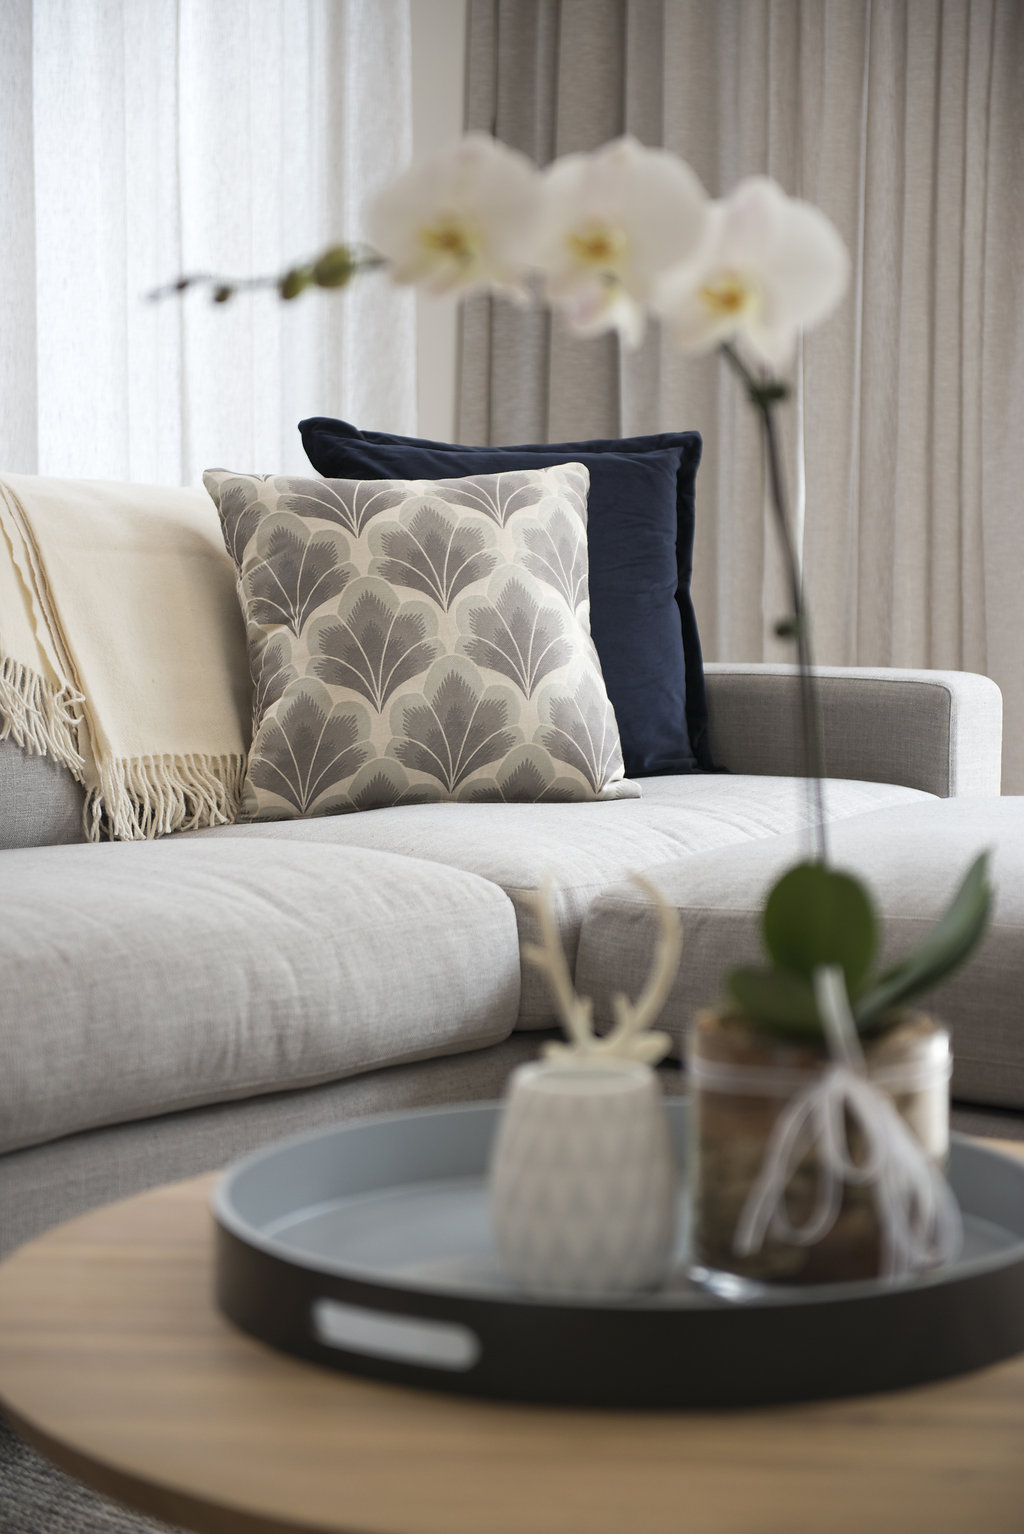 Natasha Walker Interiors